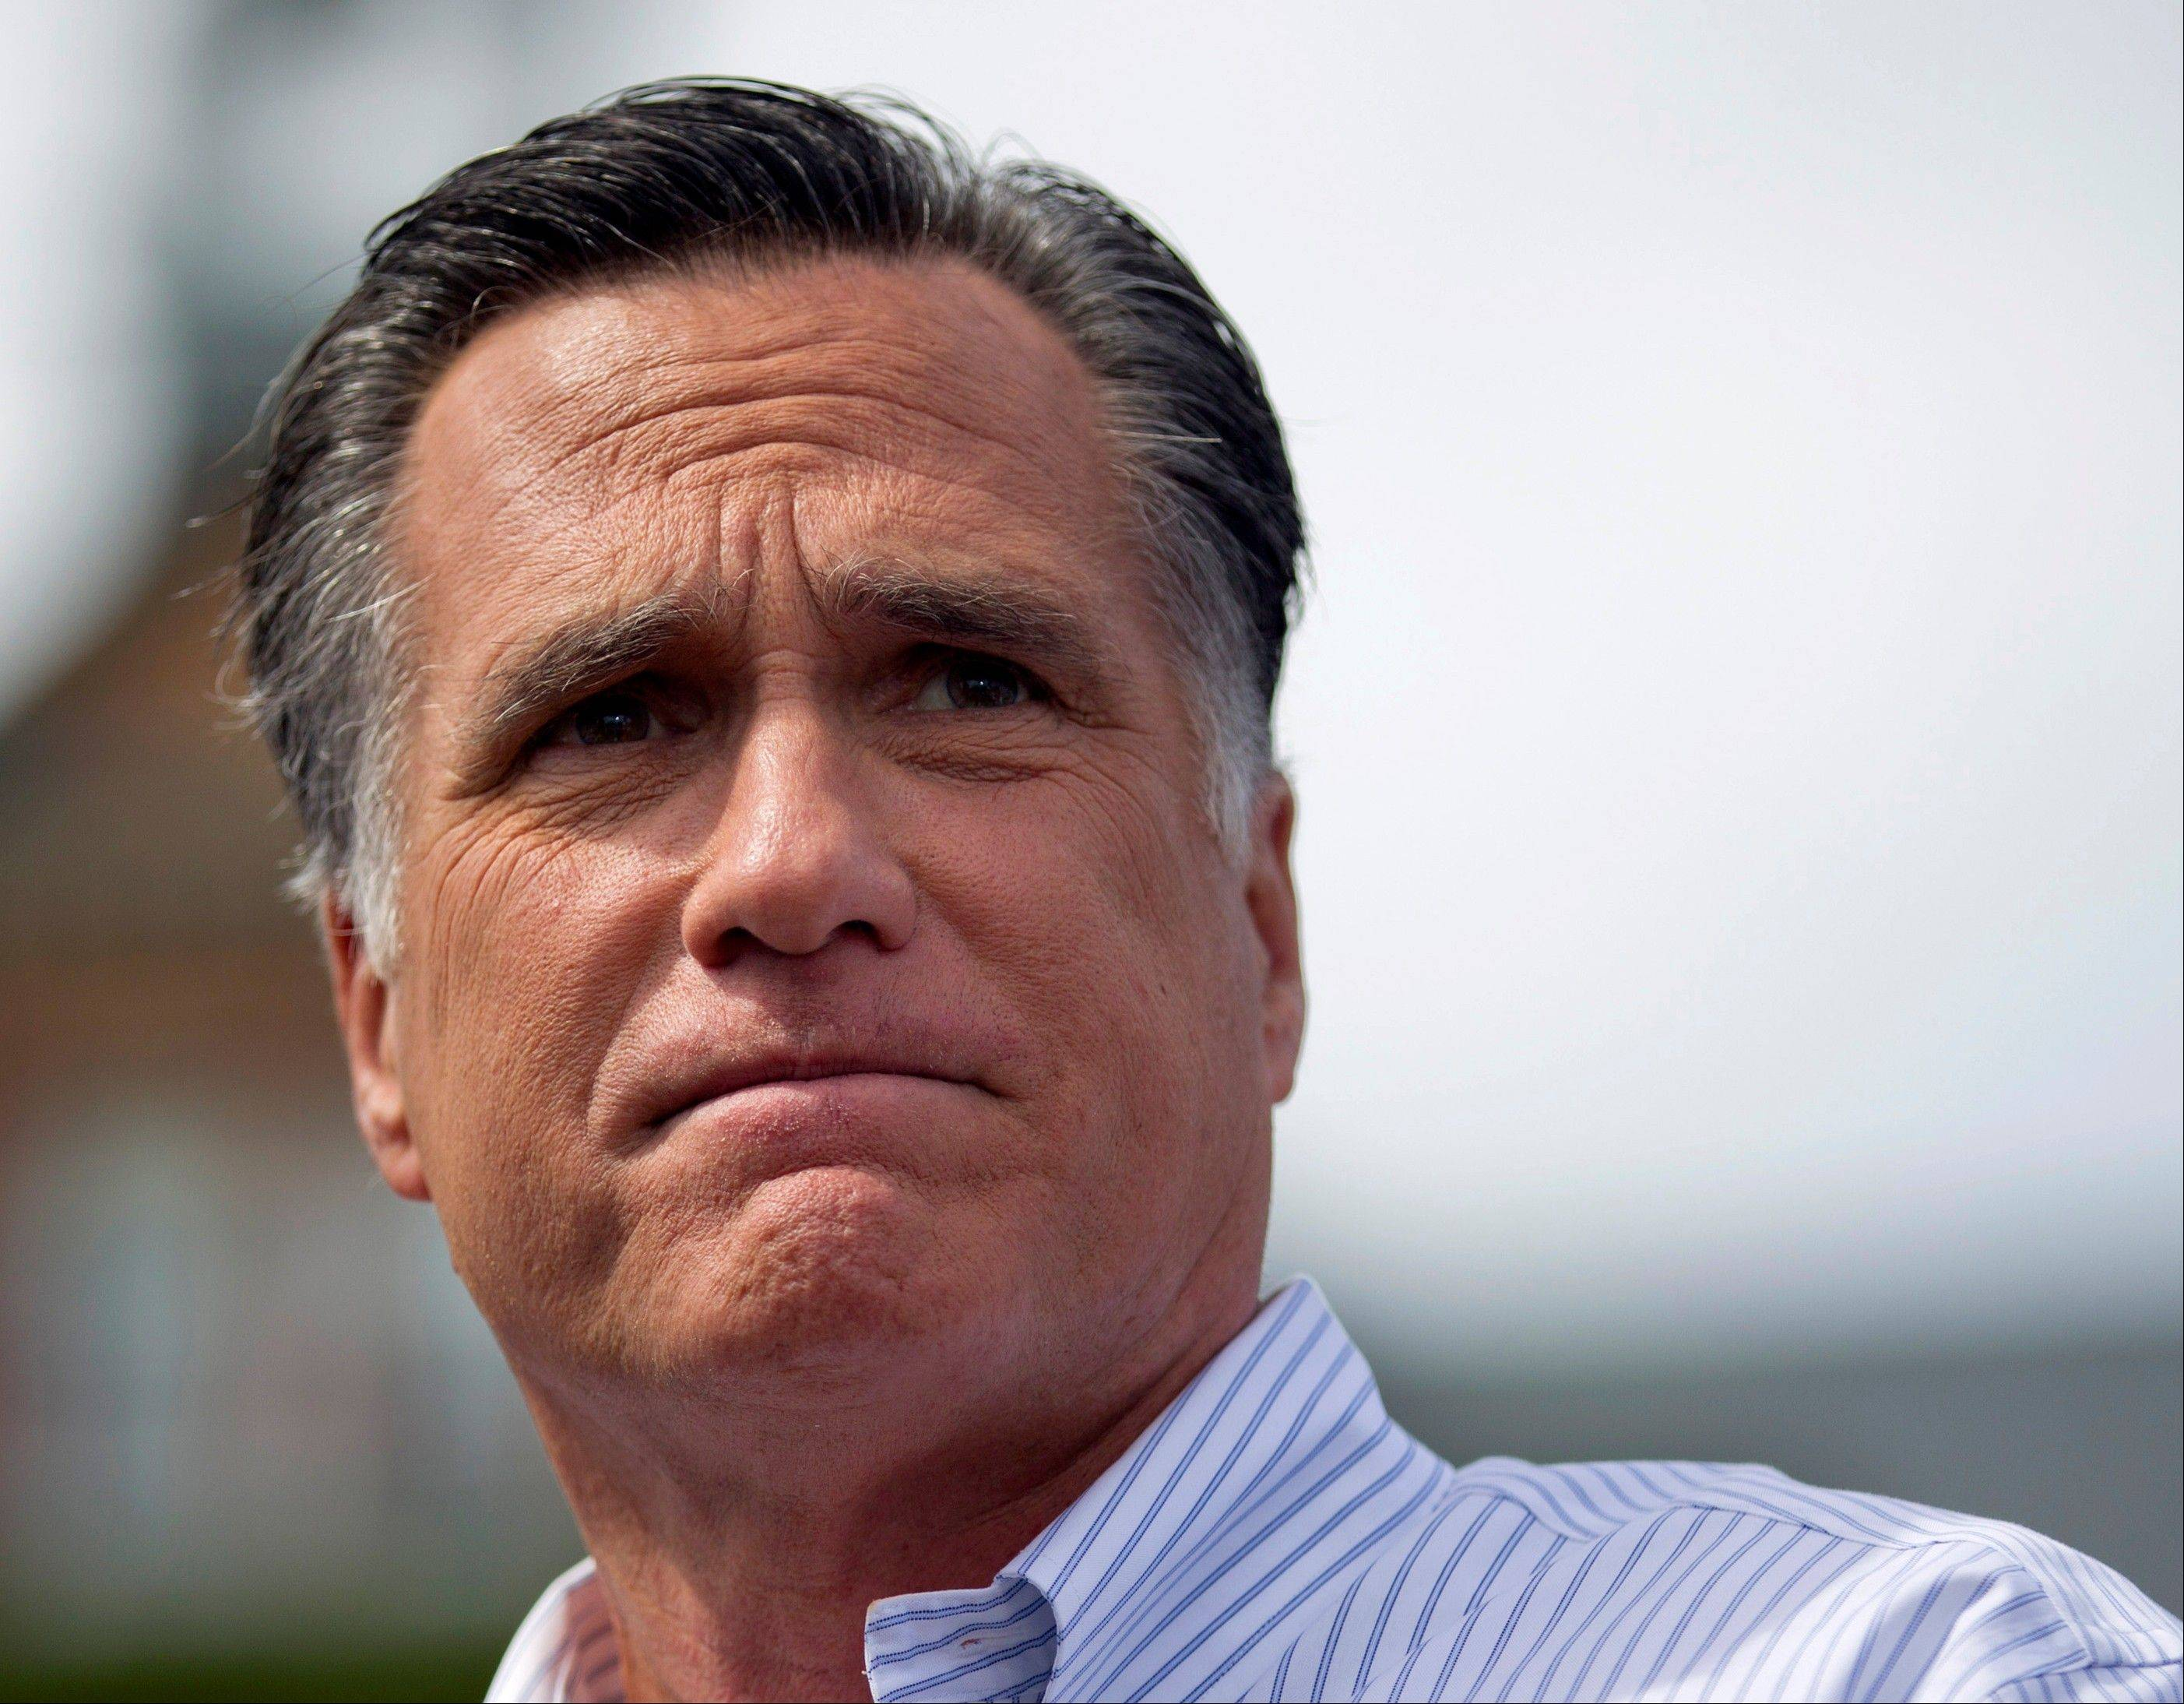 Republican presidential candidate, former Massachusetts Gov. Mitt Romney is starting to open up a bit more about his lifelong commitment to Mormonism and lay leadership in the church.